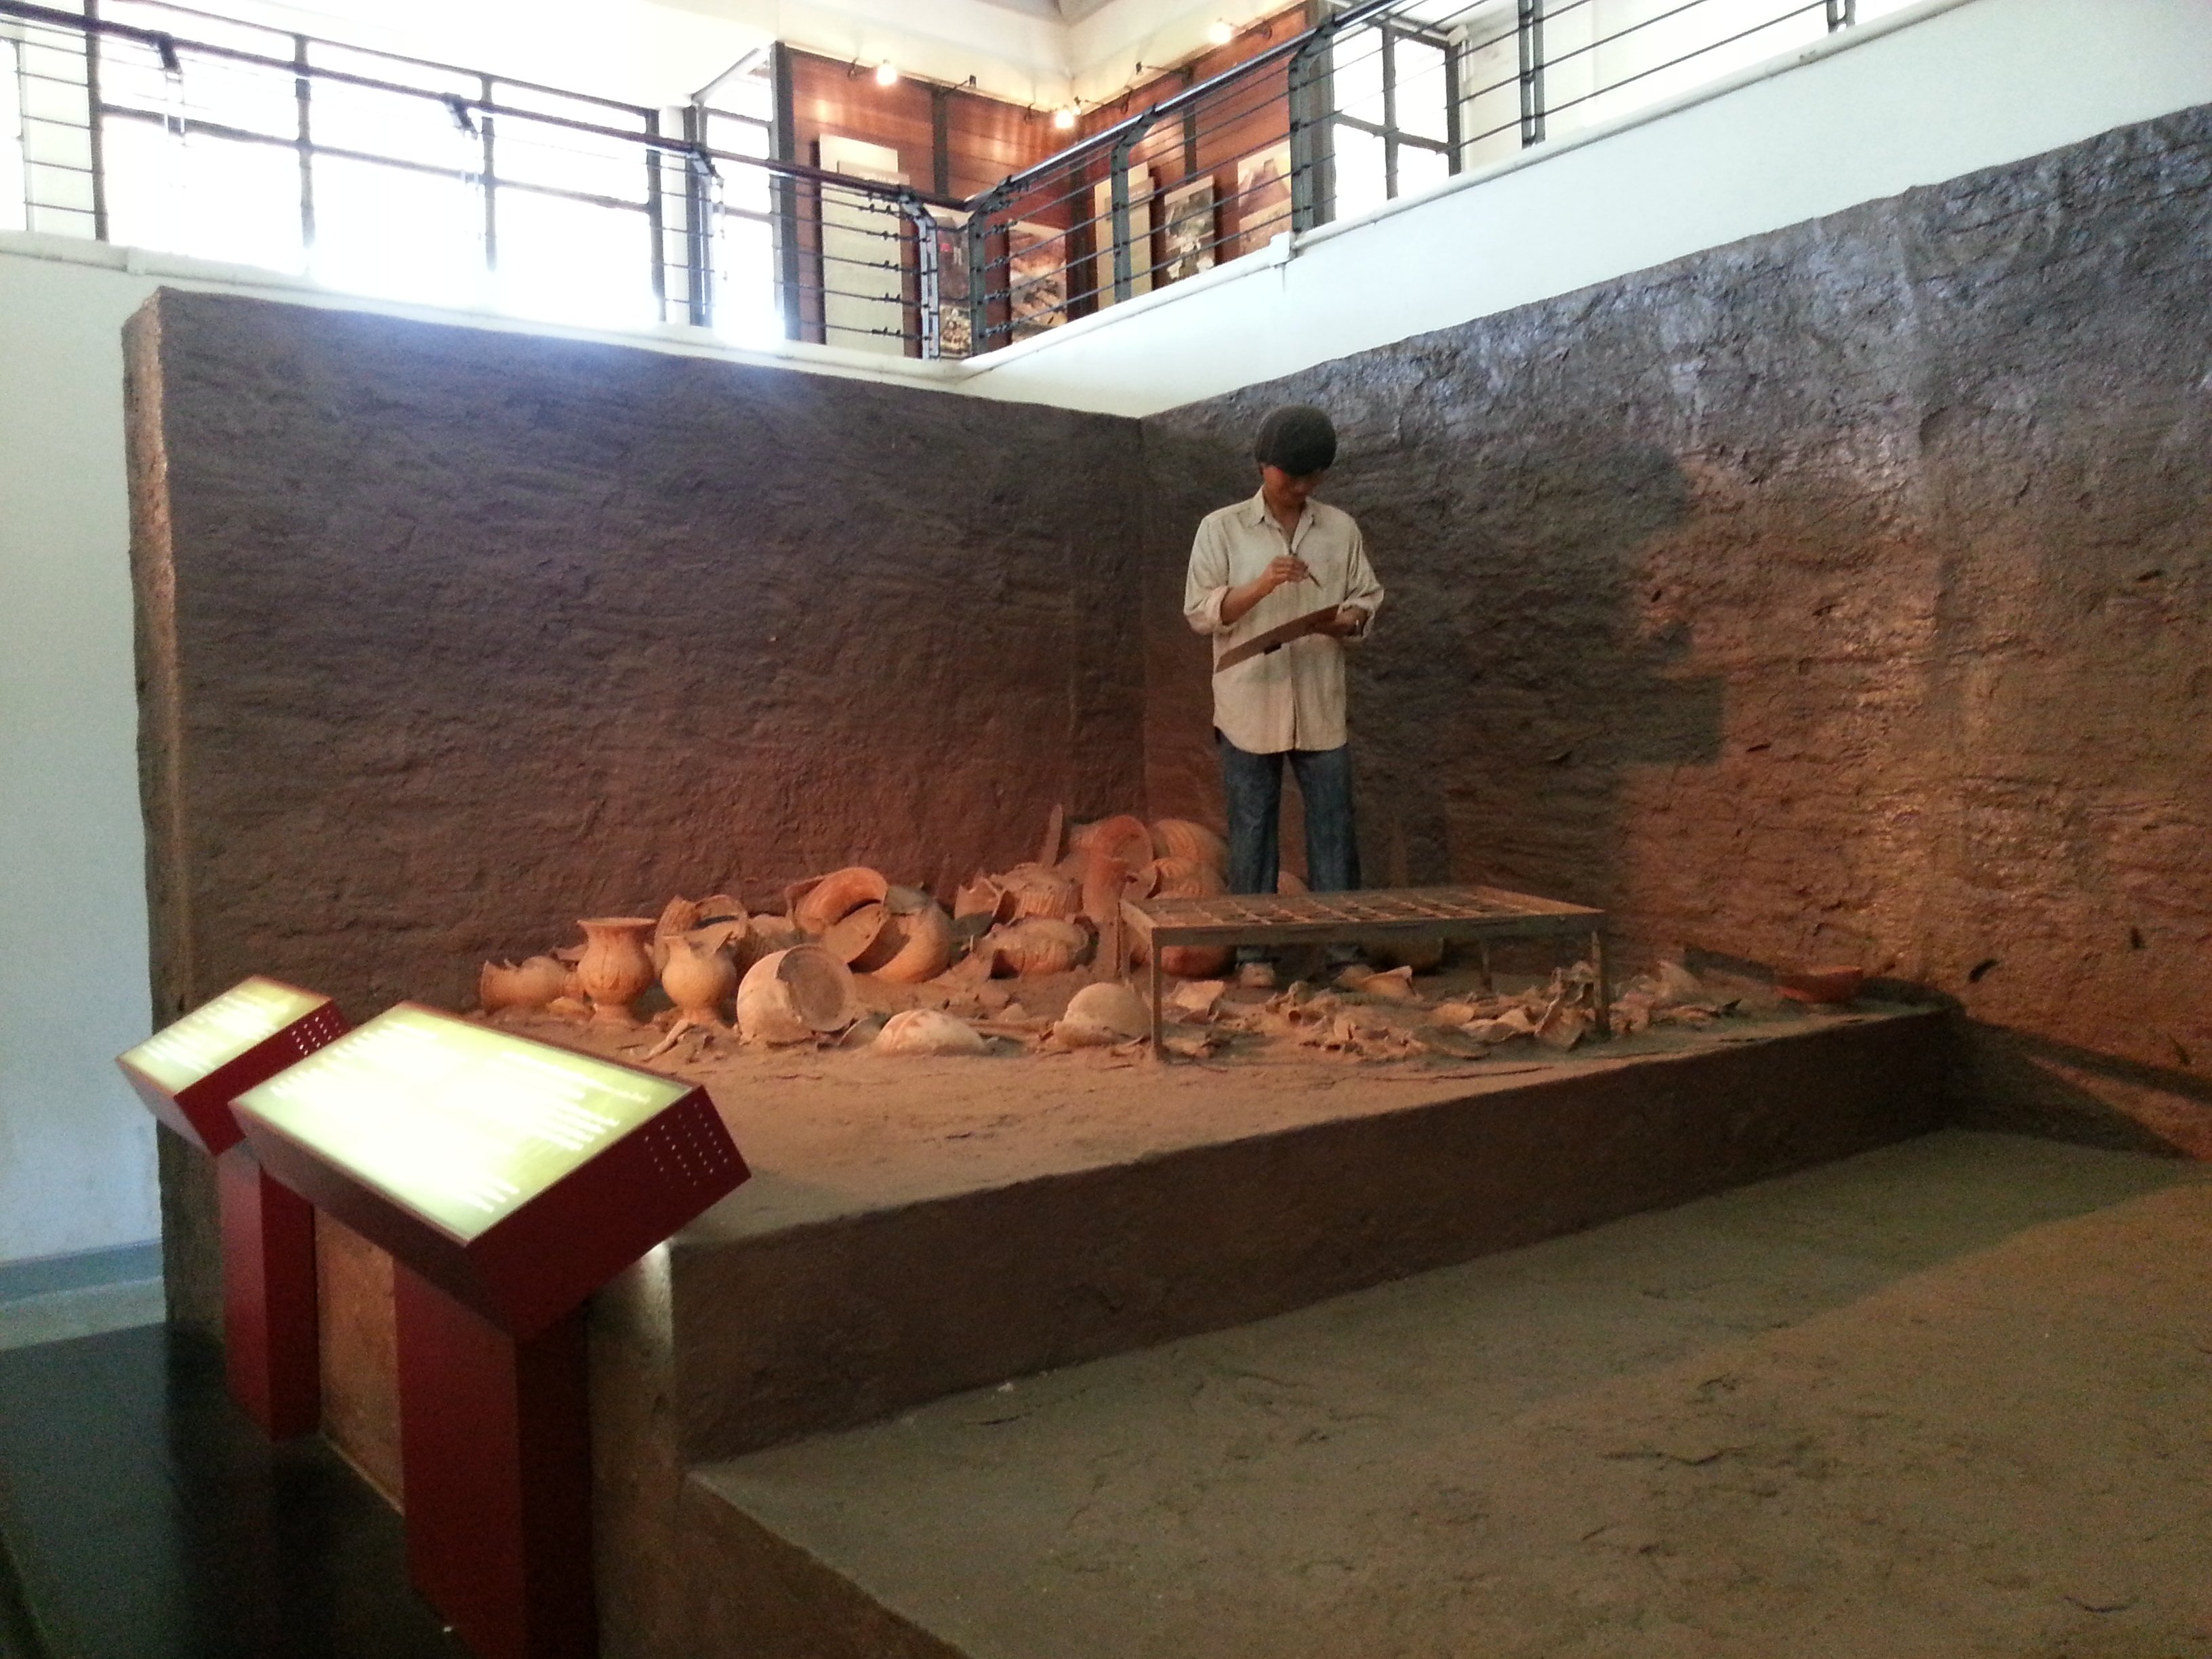 Diorama of the archaeological work at Ban Chiang